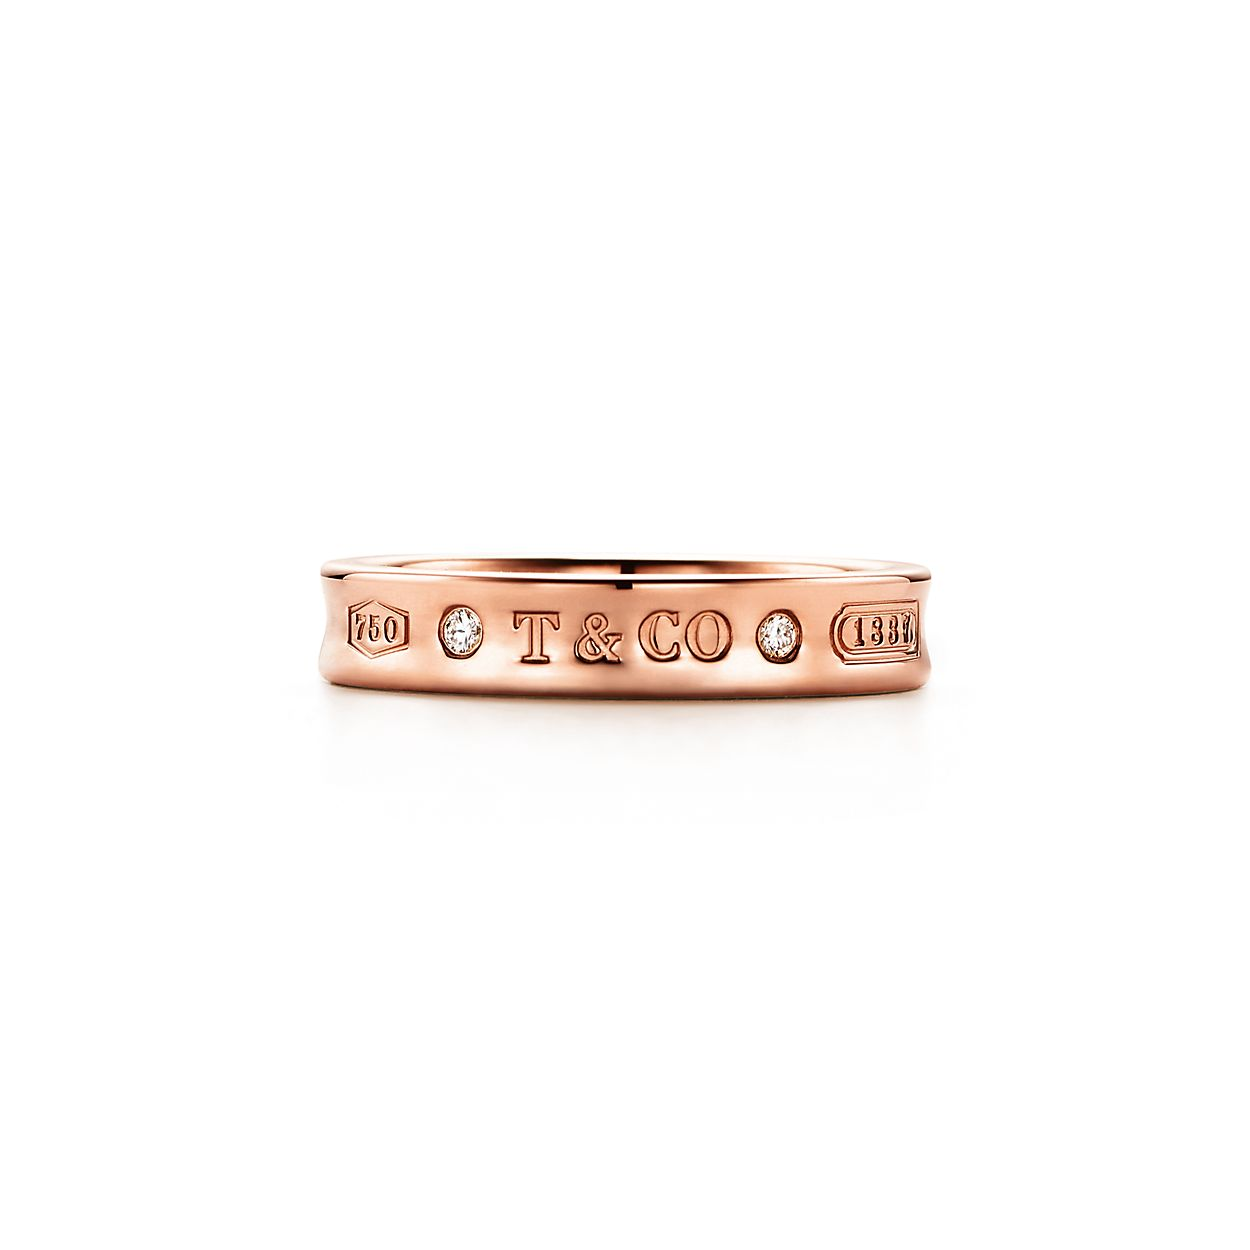 Tiffany 1837 narrow ring in 18k rose gold with diamonds - Size 11 1/2 Tiffany & Co. aVGG3mgdkI